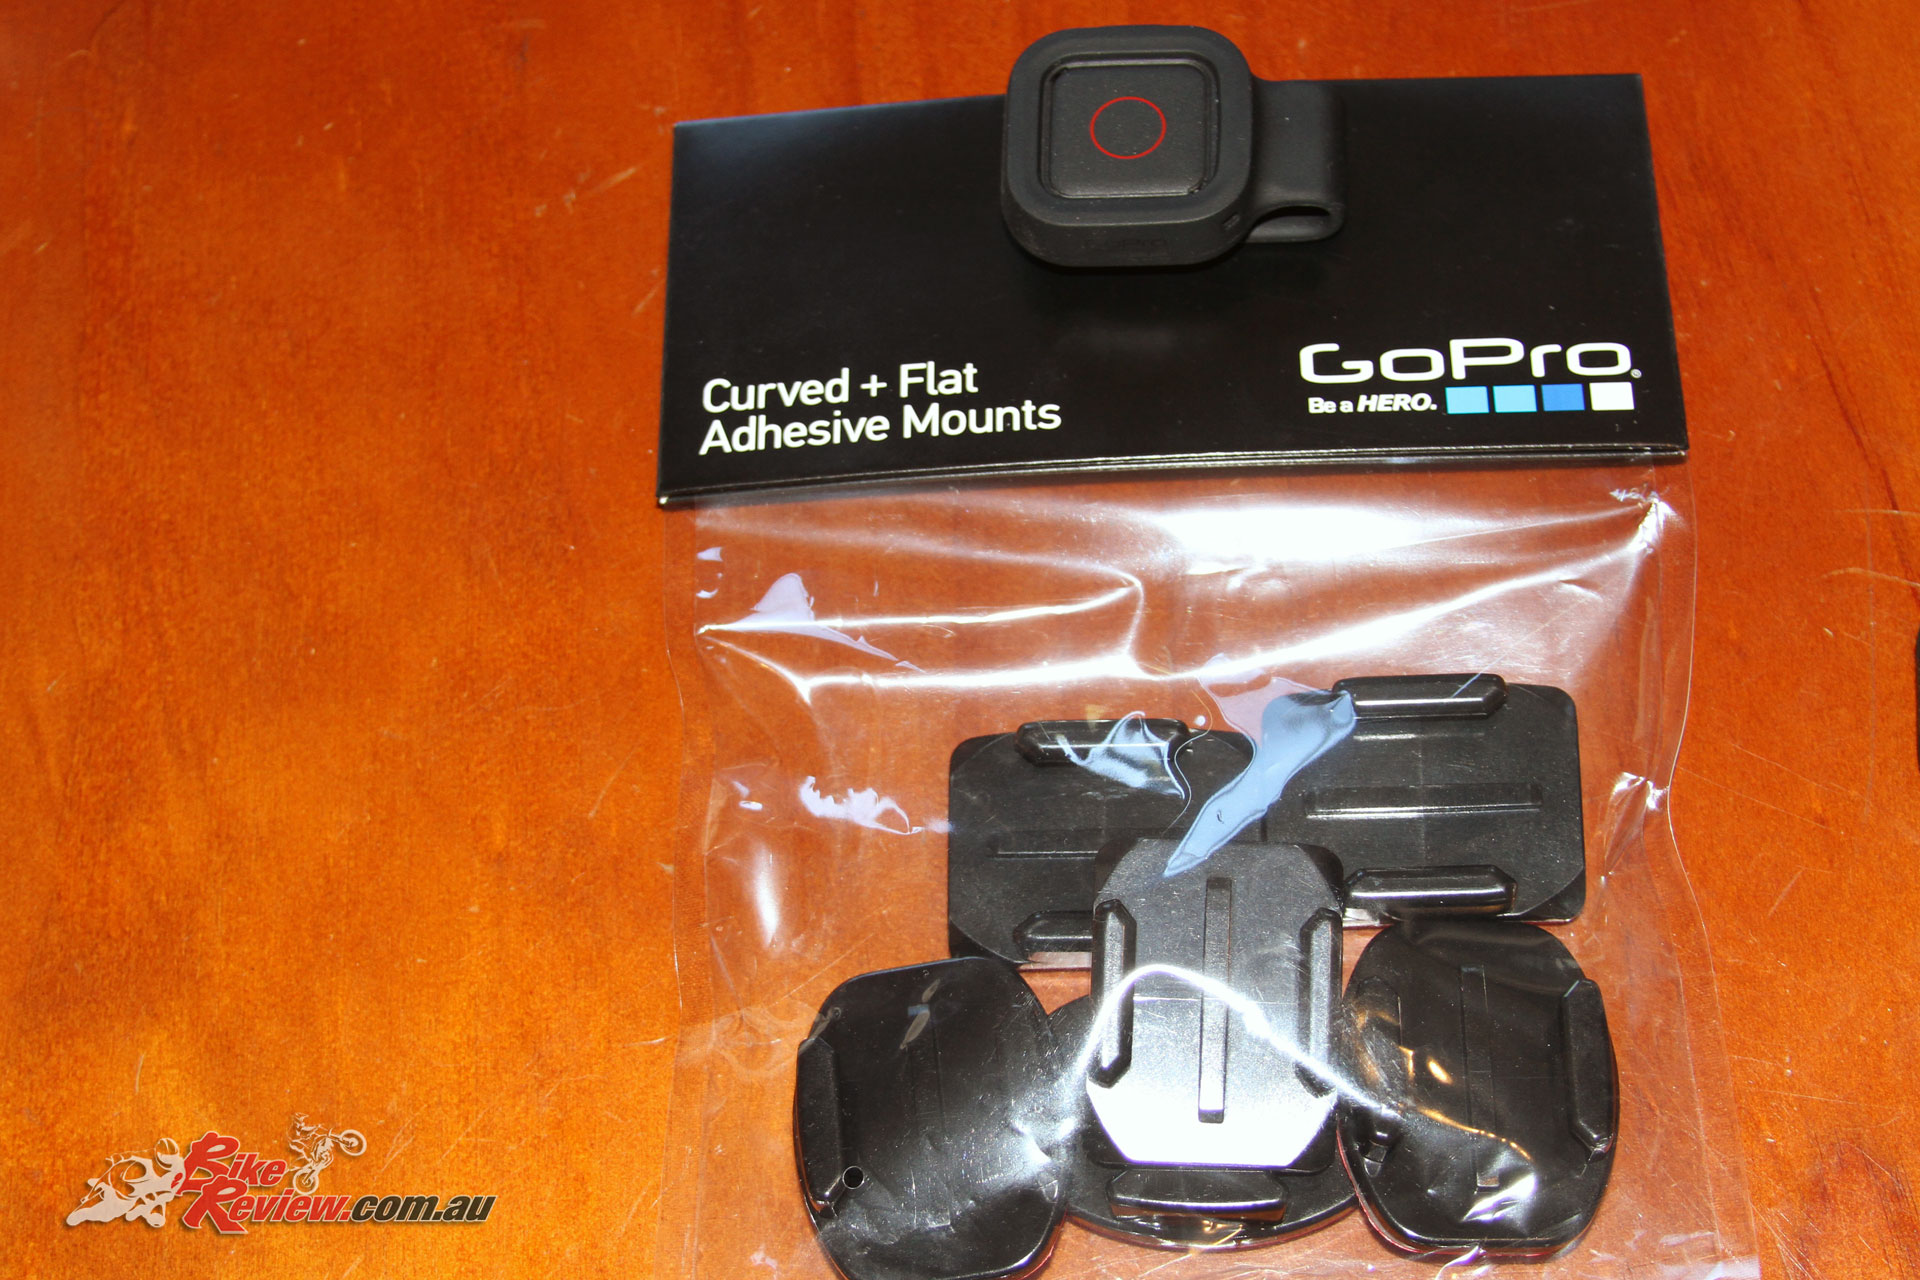 Adhesive mounts come in a flat and curved type, so you'll be able to stick the GoPro pretty much anywhere.